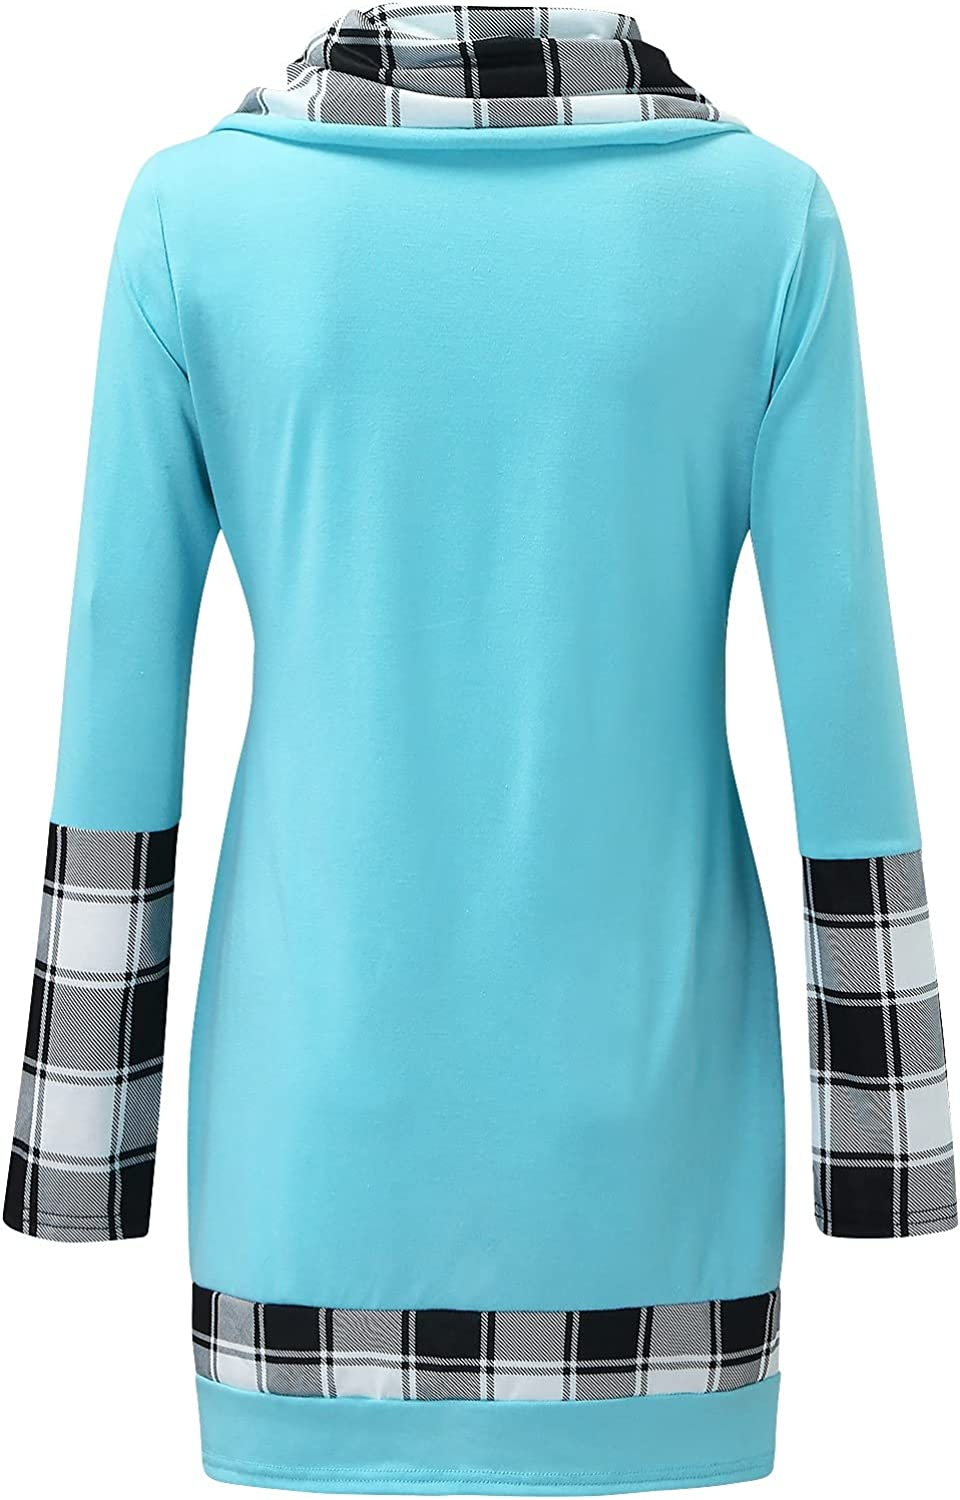 Sweatshirt for Women Long Sleeve Casual Waffle Turn Down Collar Trendy Split Thickening Pullover Tops Tee for Girls